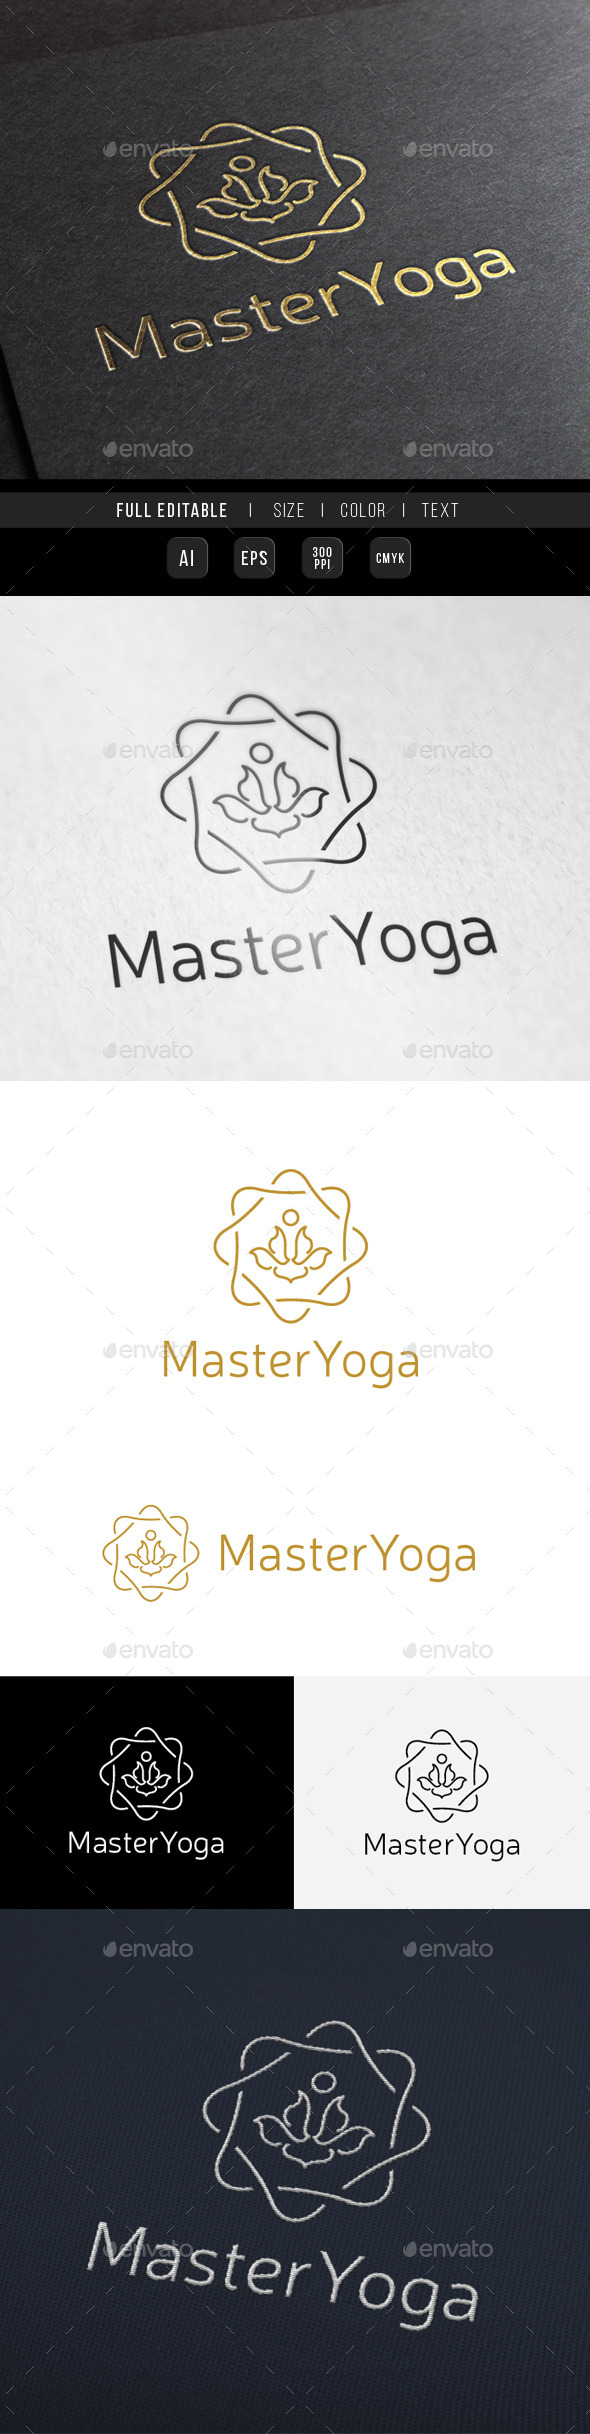 GraphicRiver Guru Master Yoga King 9965890